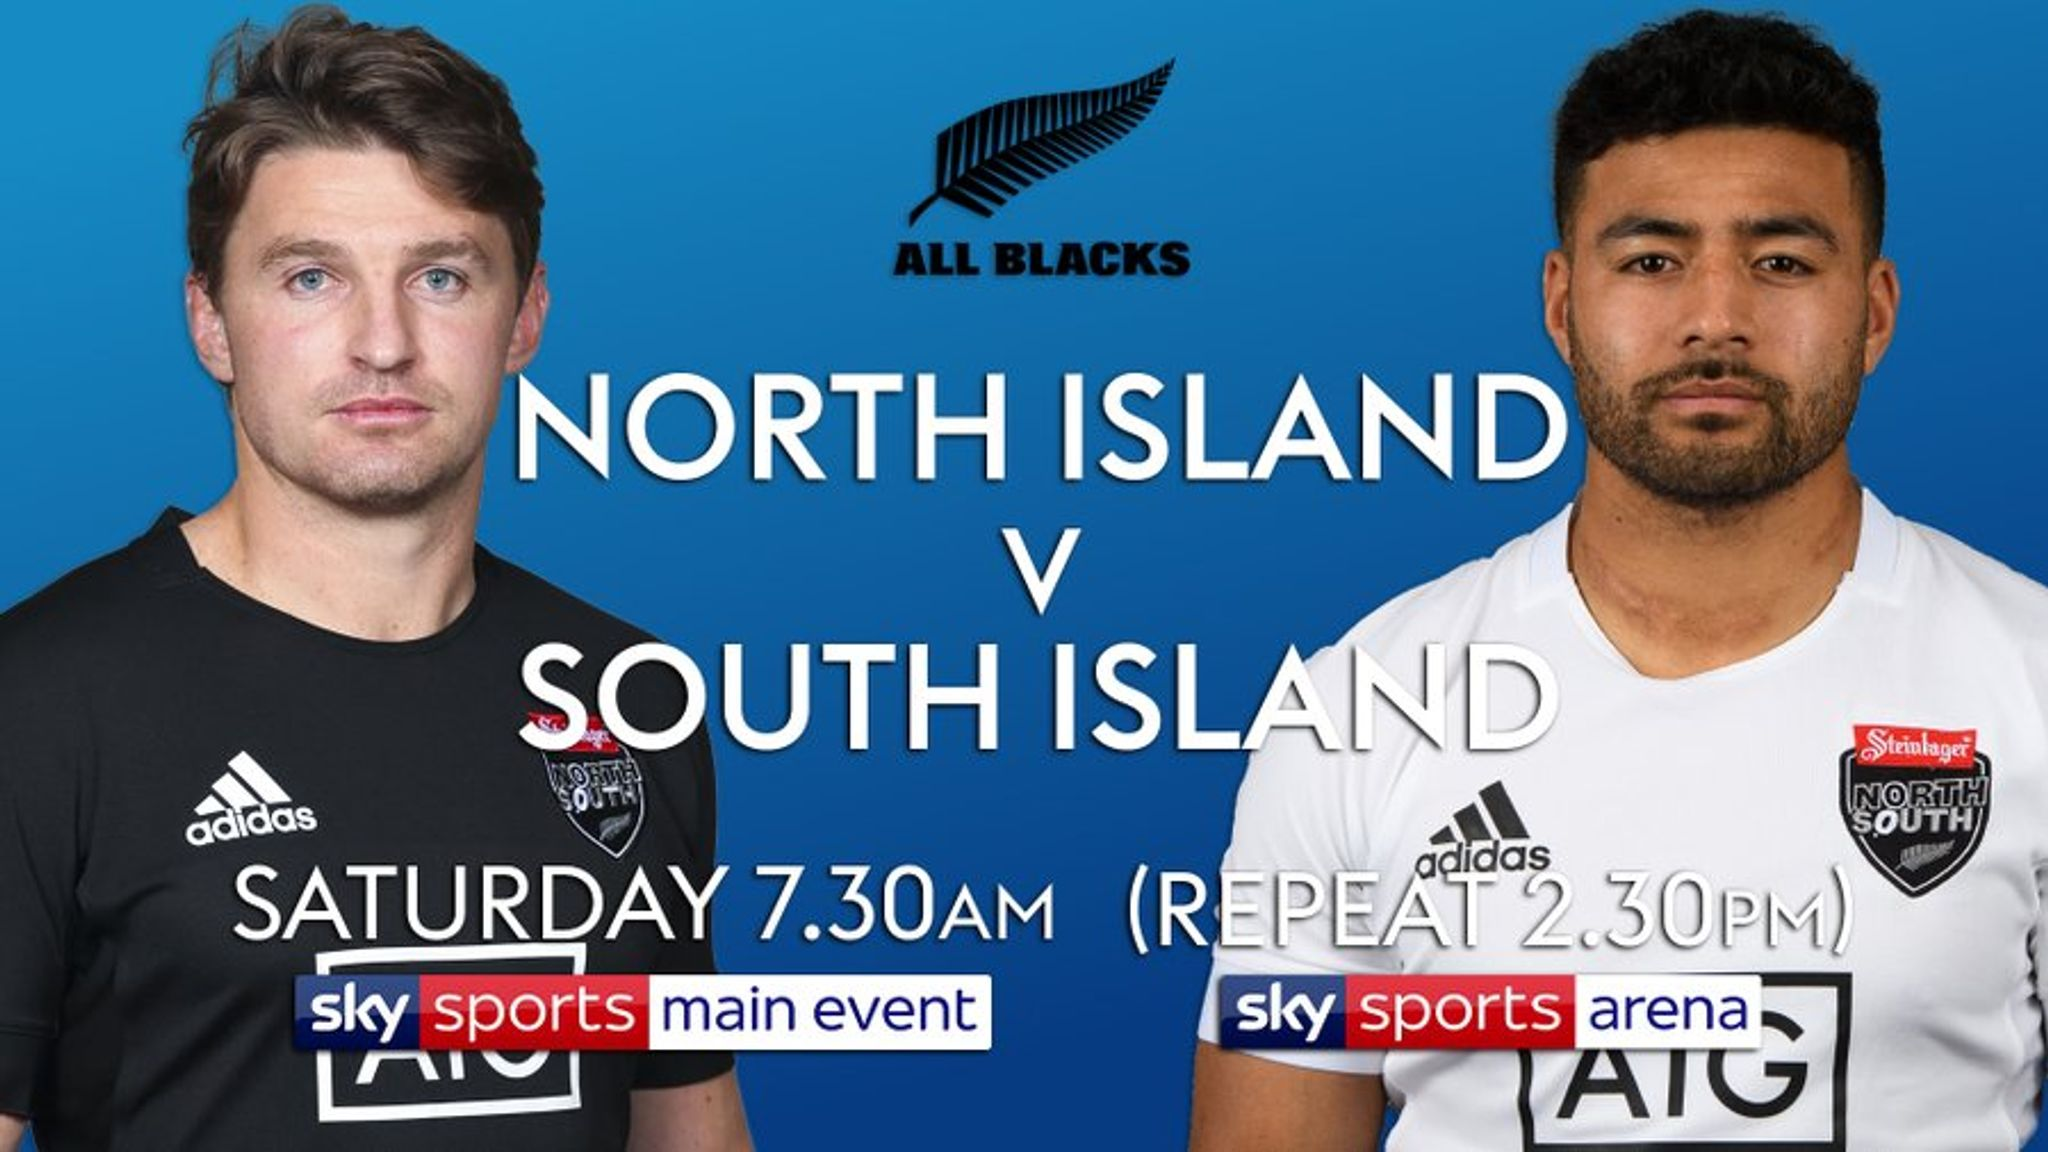 North Vs South New Zealand Rugby Clash Last Chance To Impress Ian Foster Rugby Union News Sky Sports